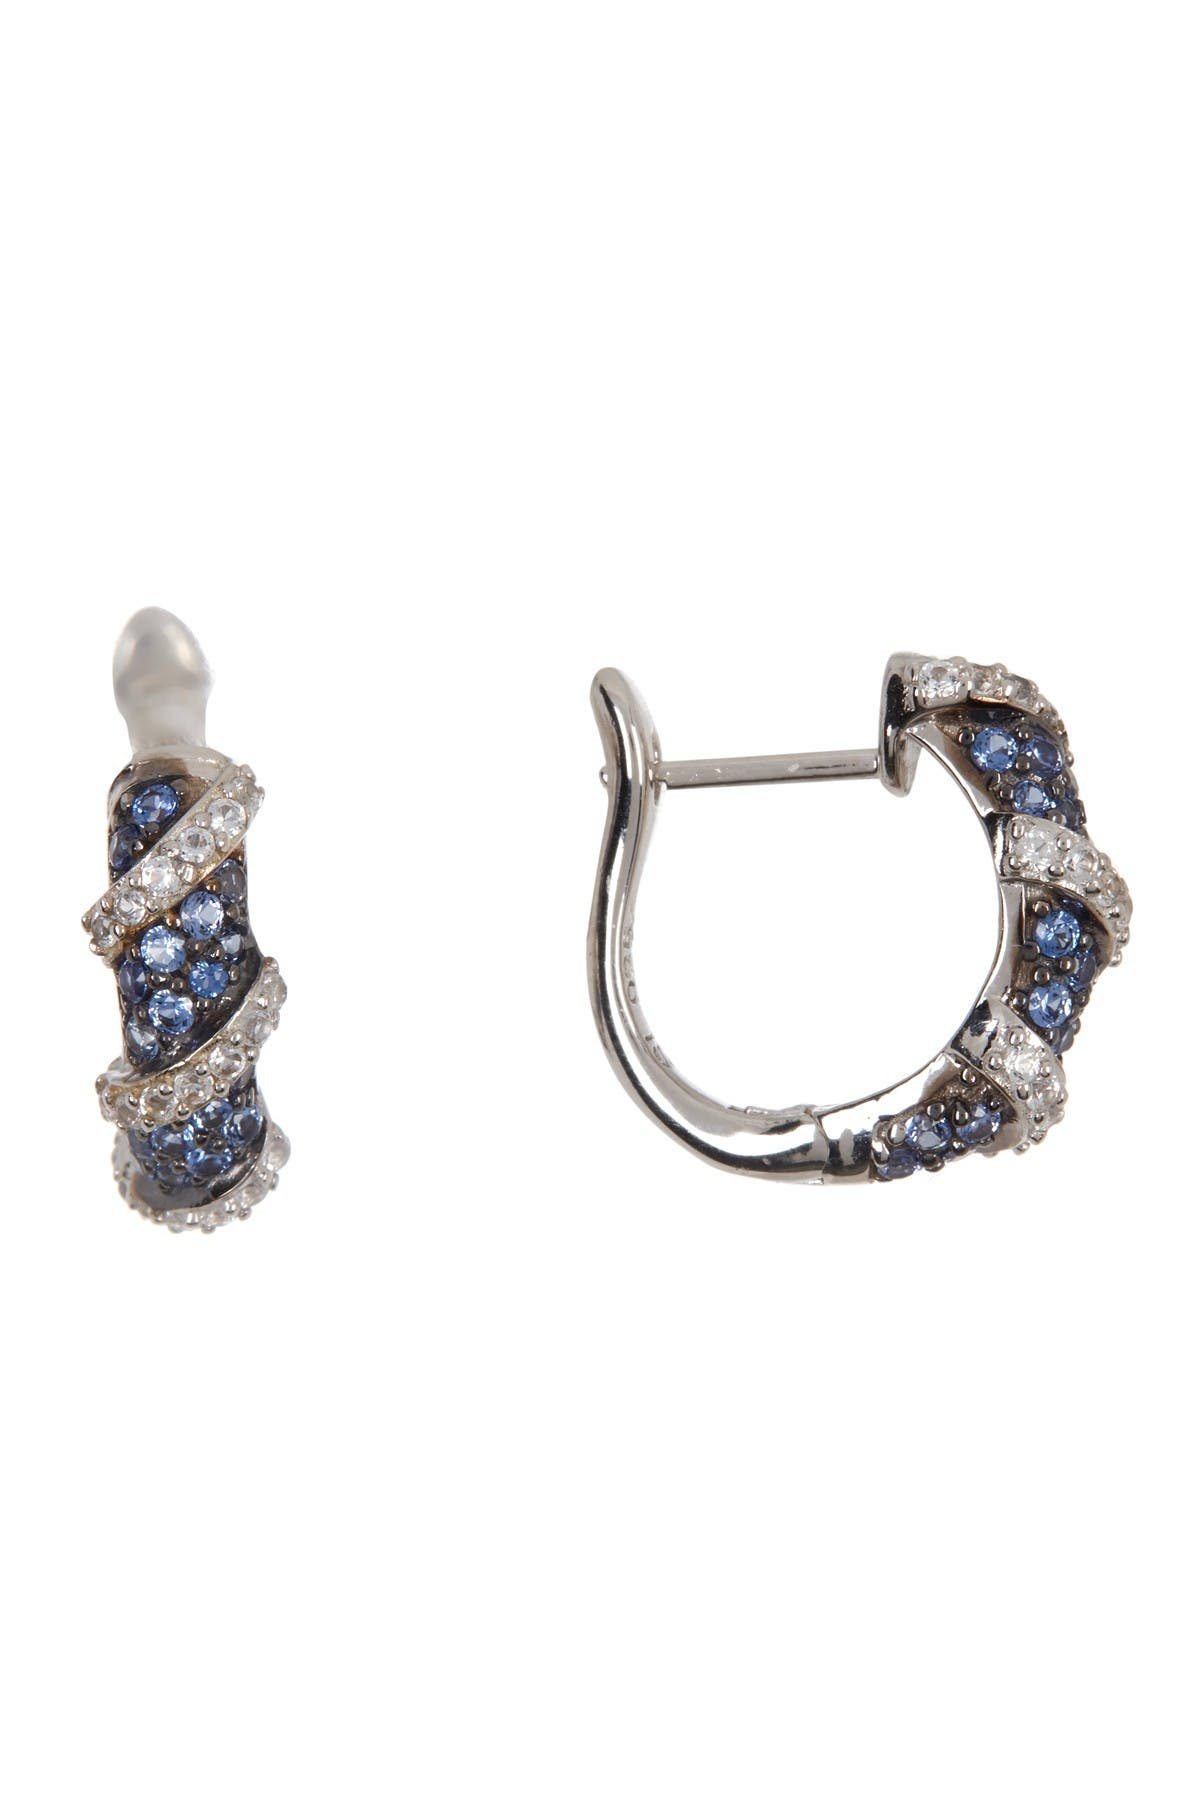 Image of Suzy Levian Sterling Silver Sapphire Huggie Earrings